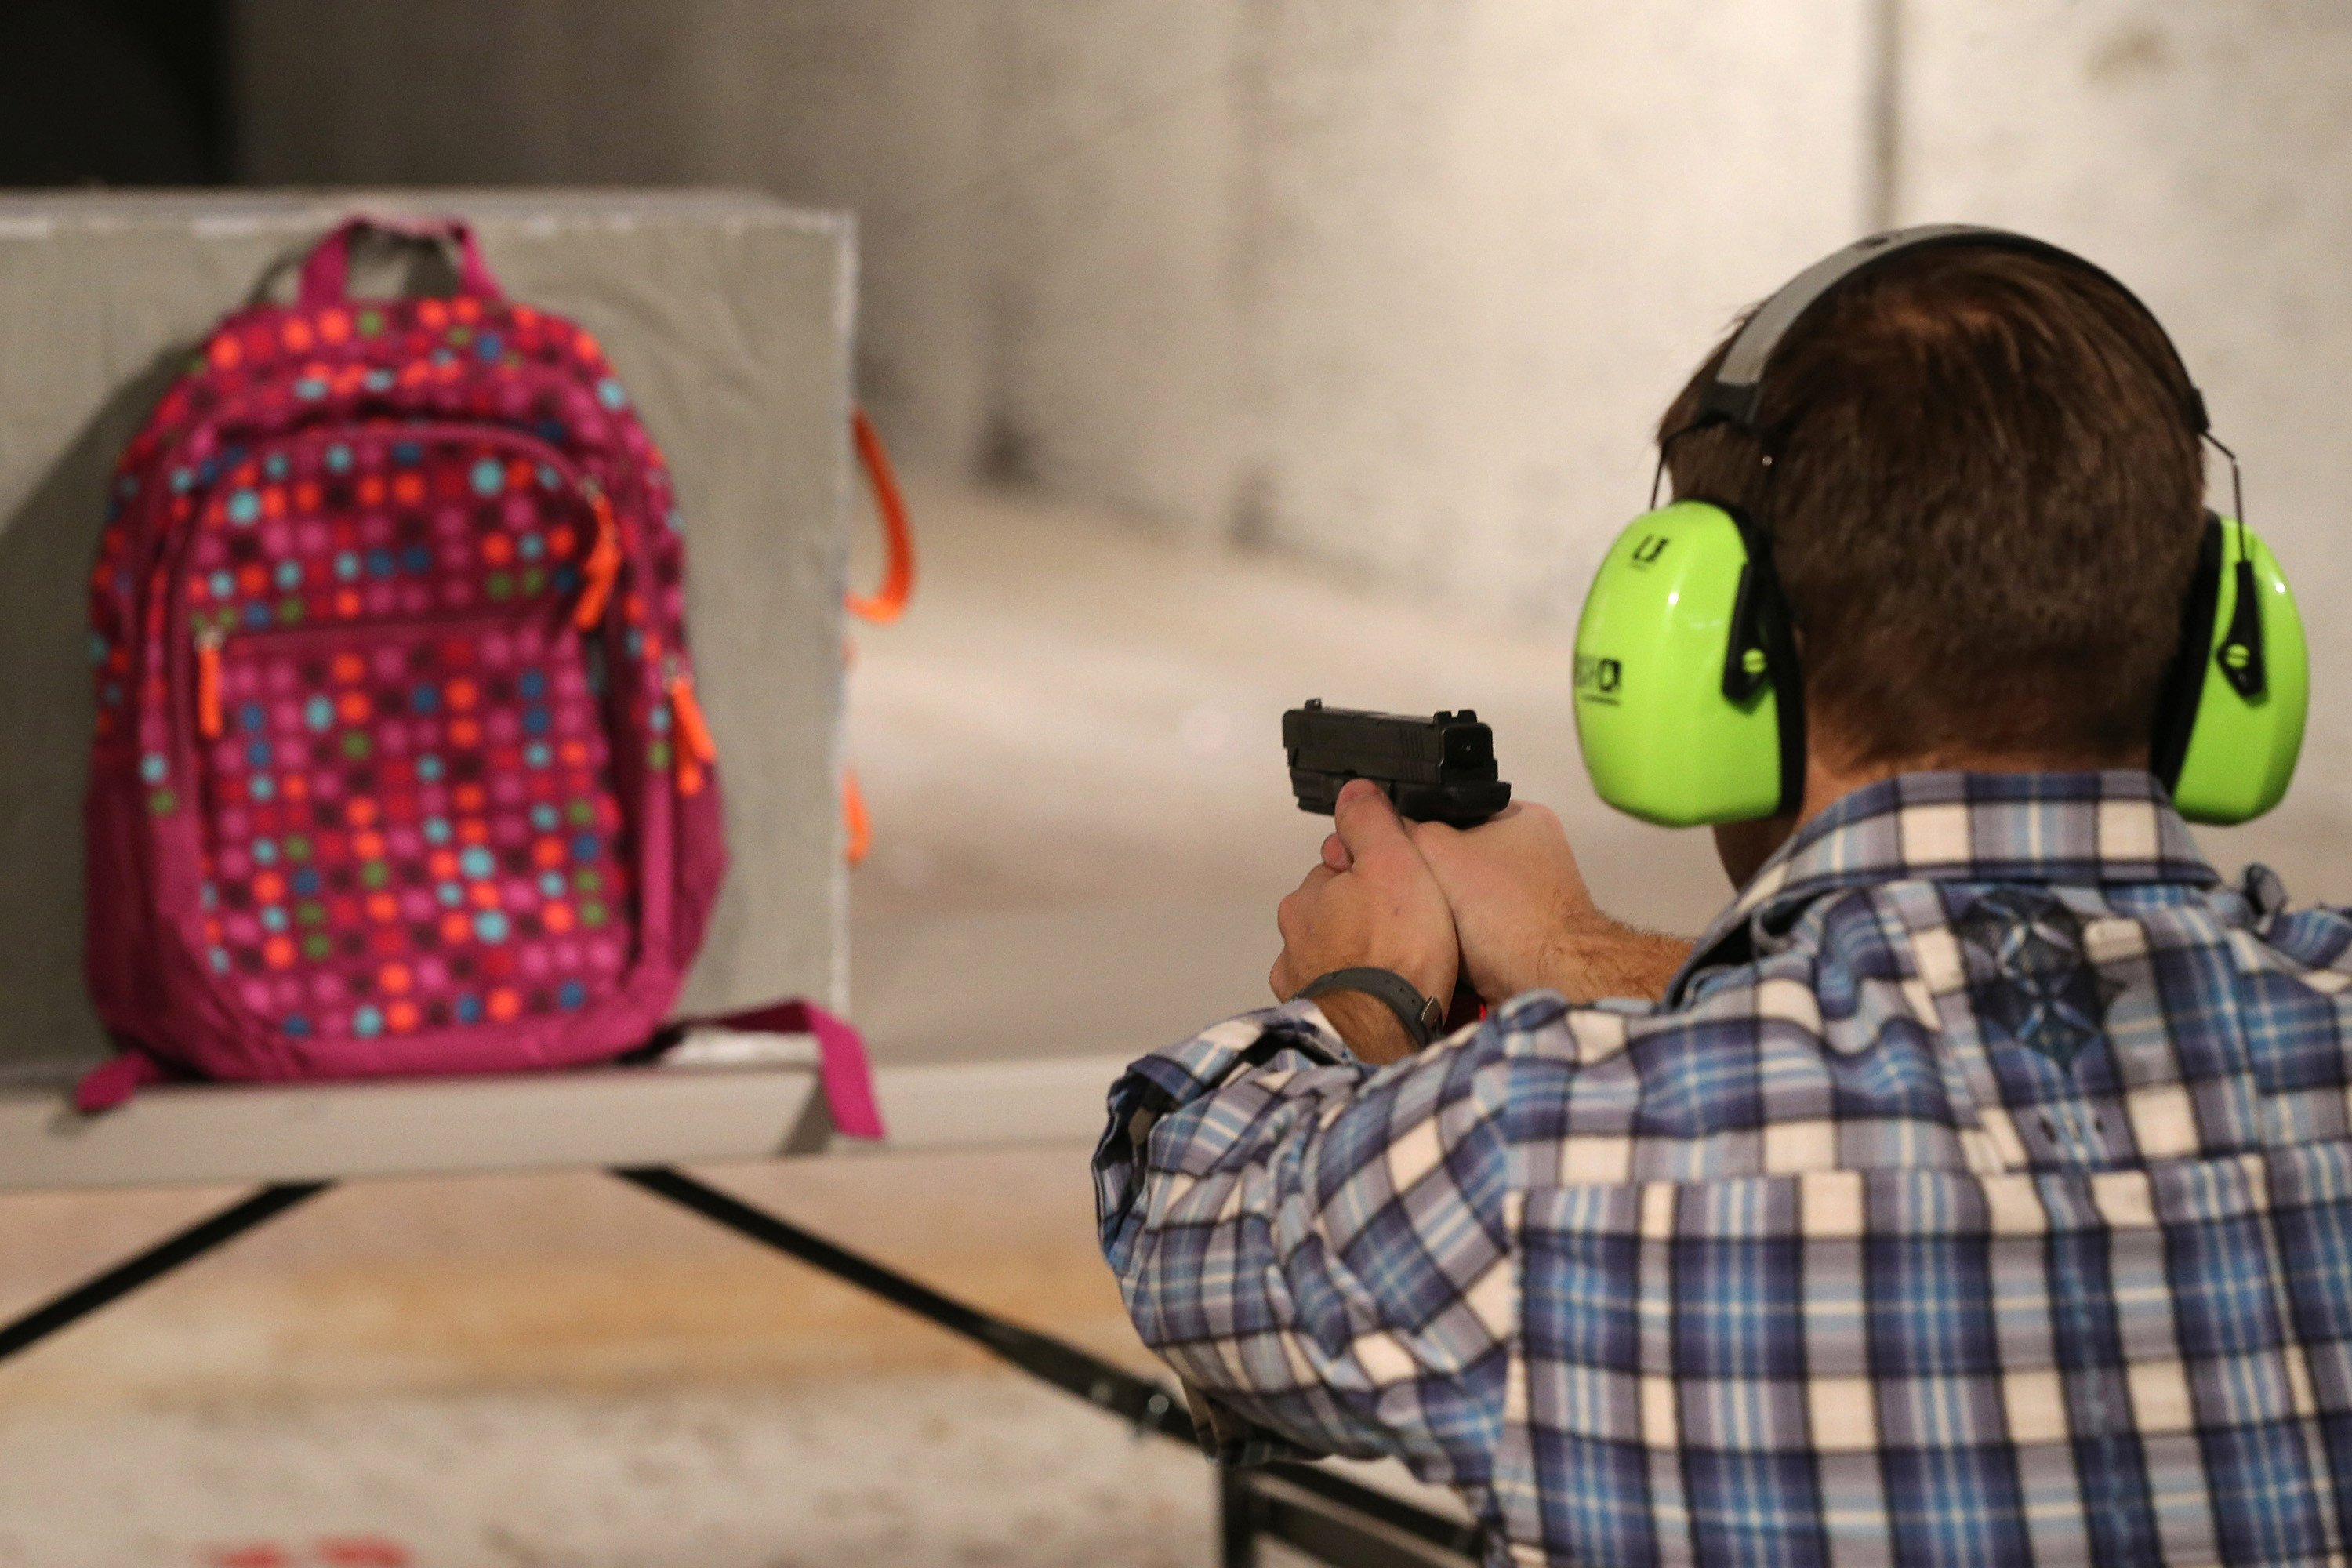 Bulletproof backpacks are not a long-term solution